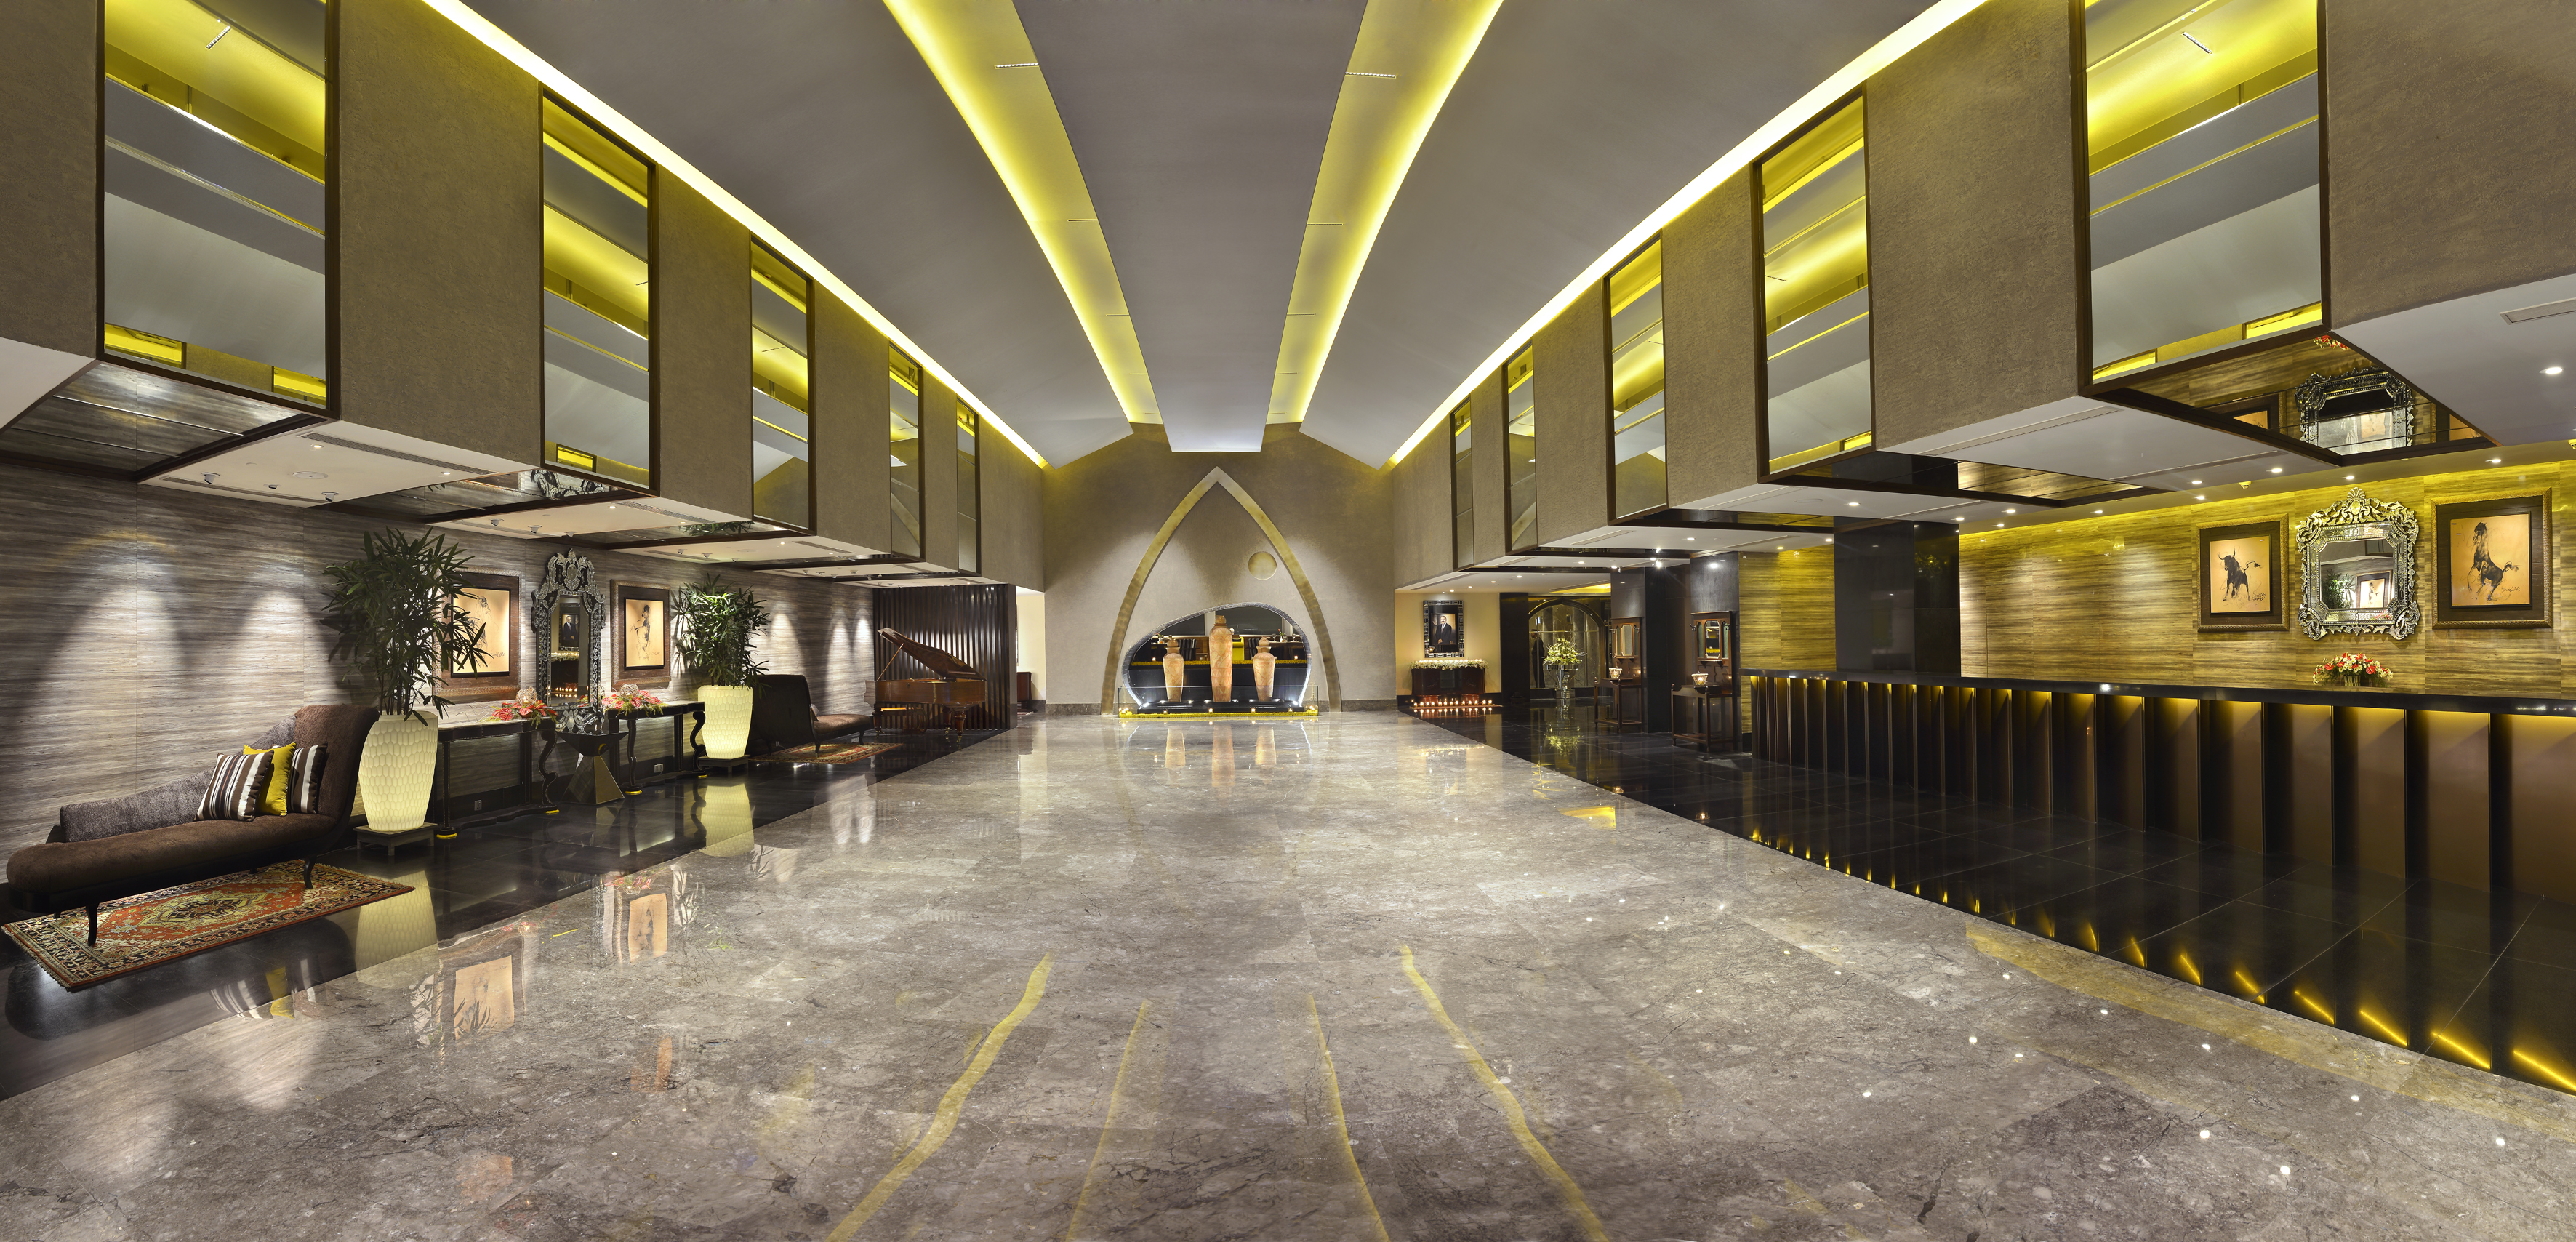 The LaLiT Great Eastern Kolkata